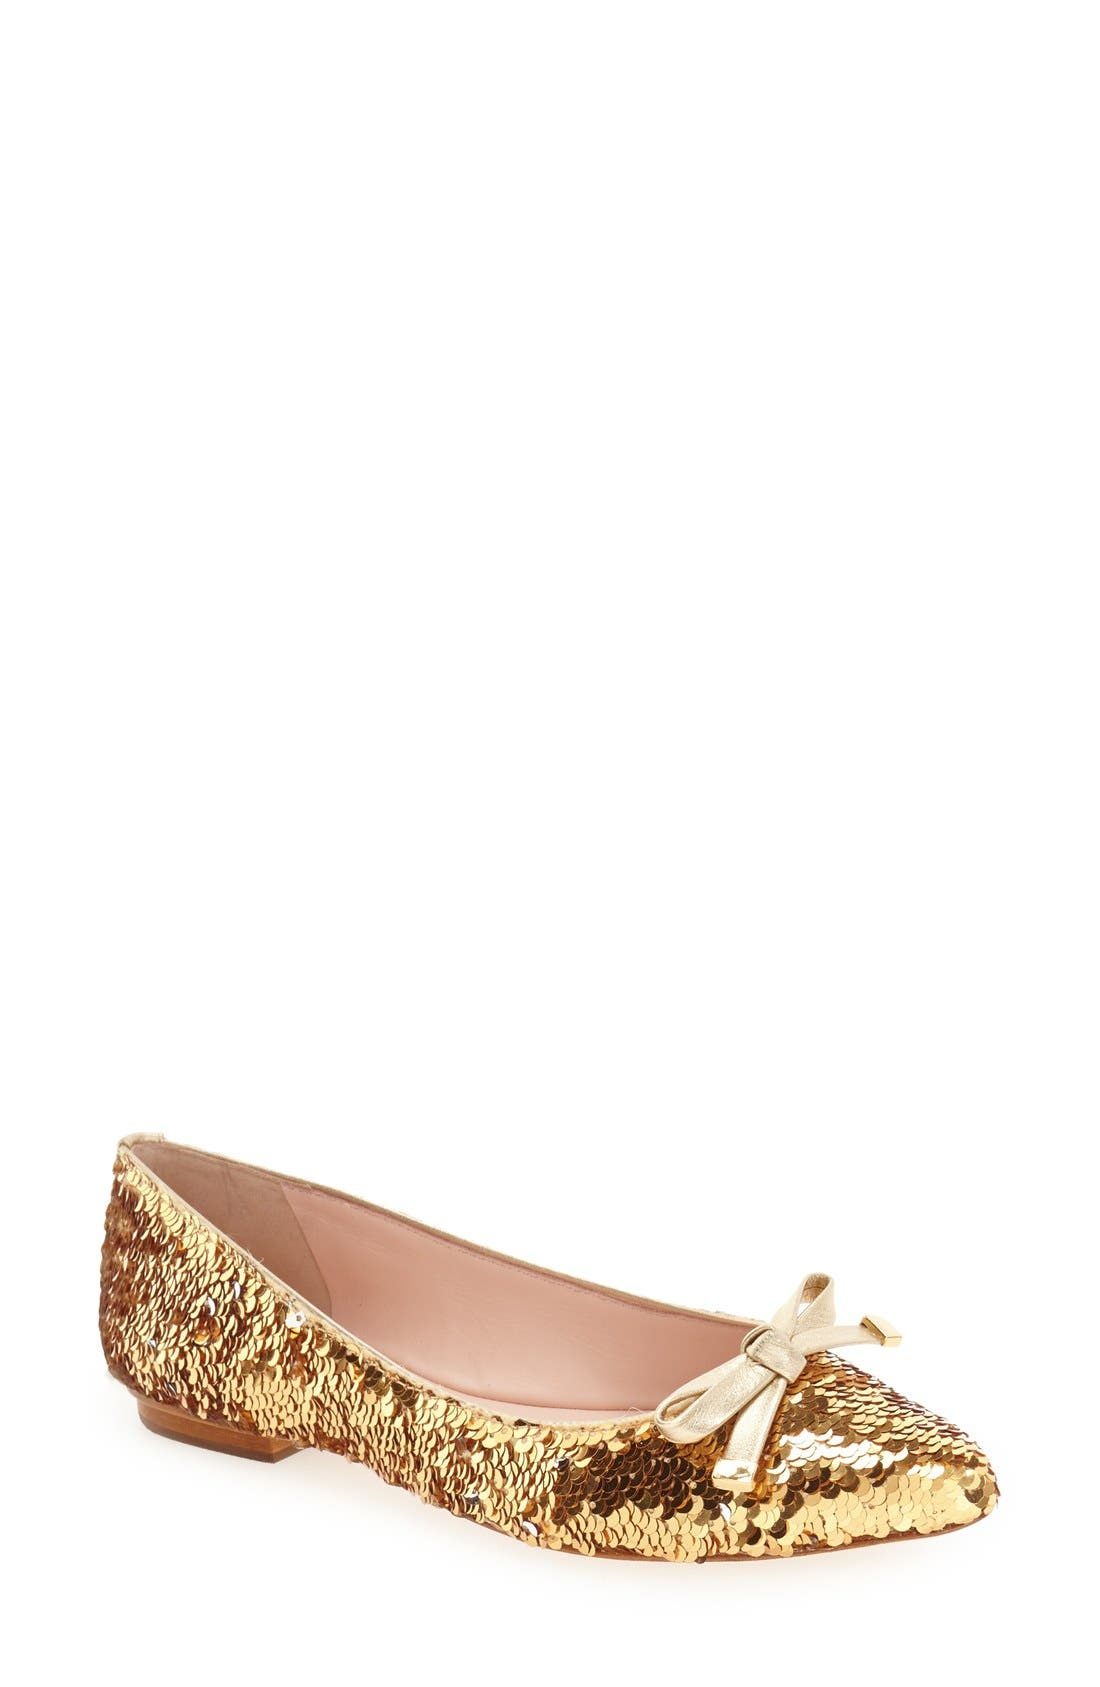 Main Image - kate spade new york 'emma too' pointy toe flat (Women)